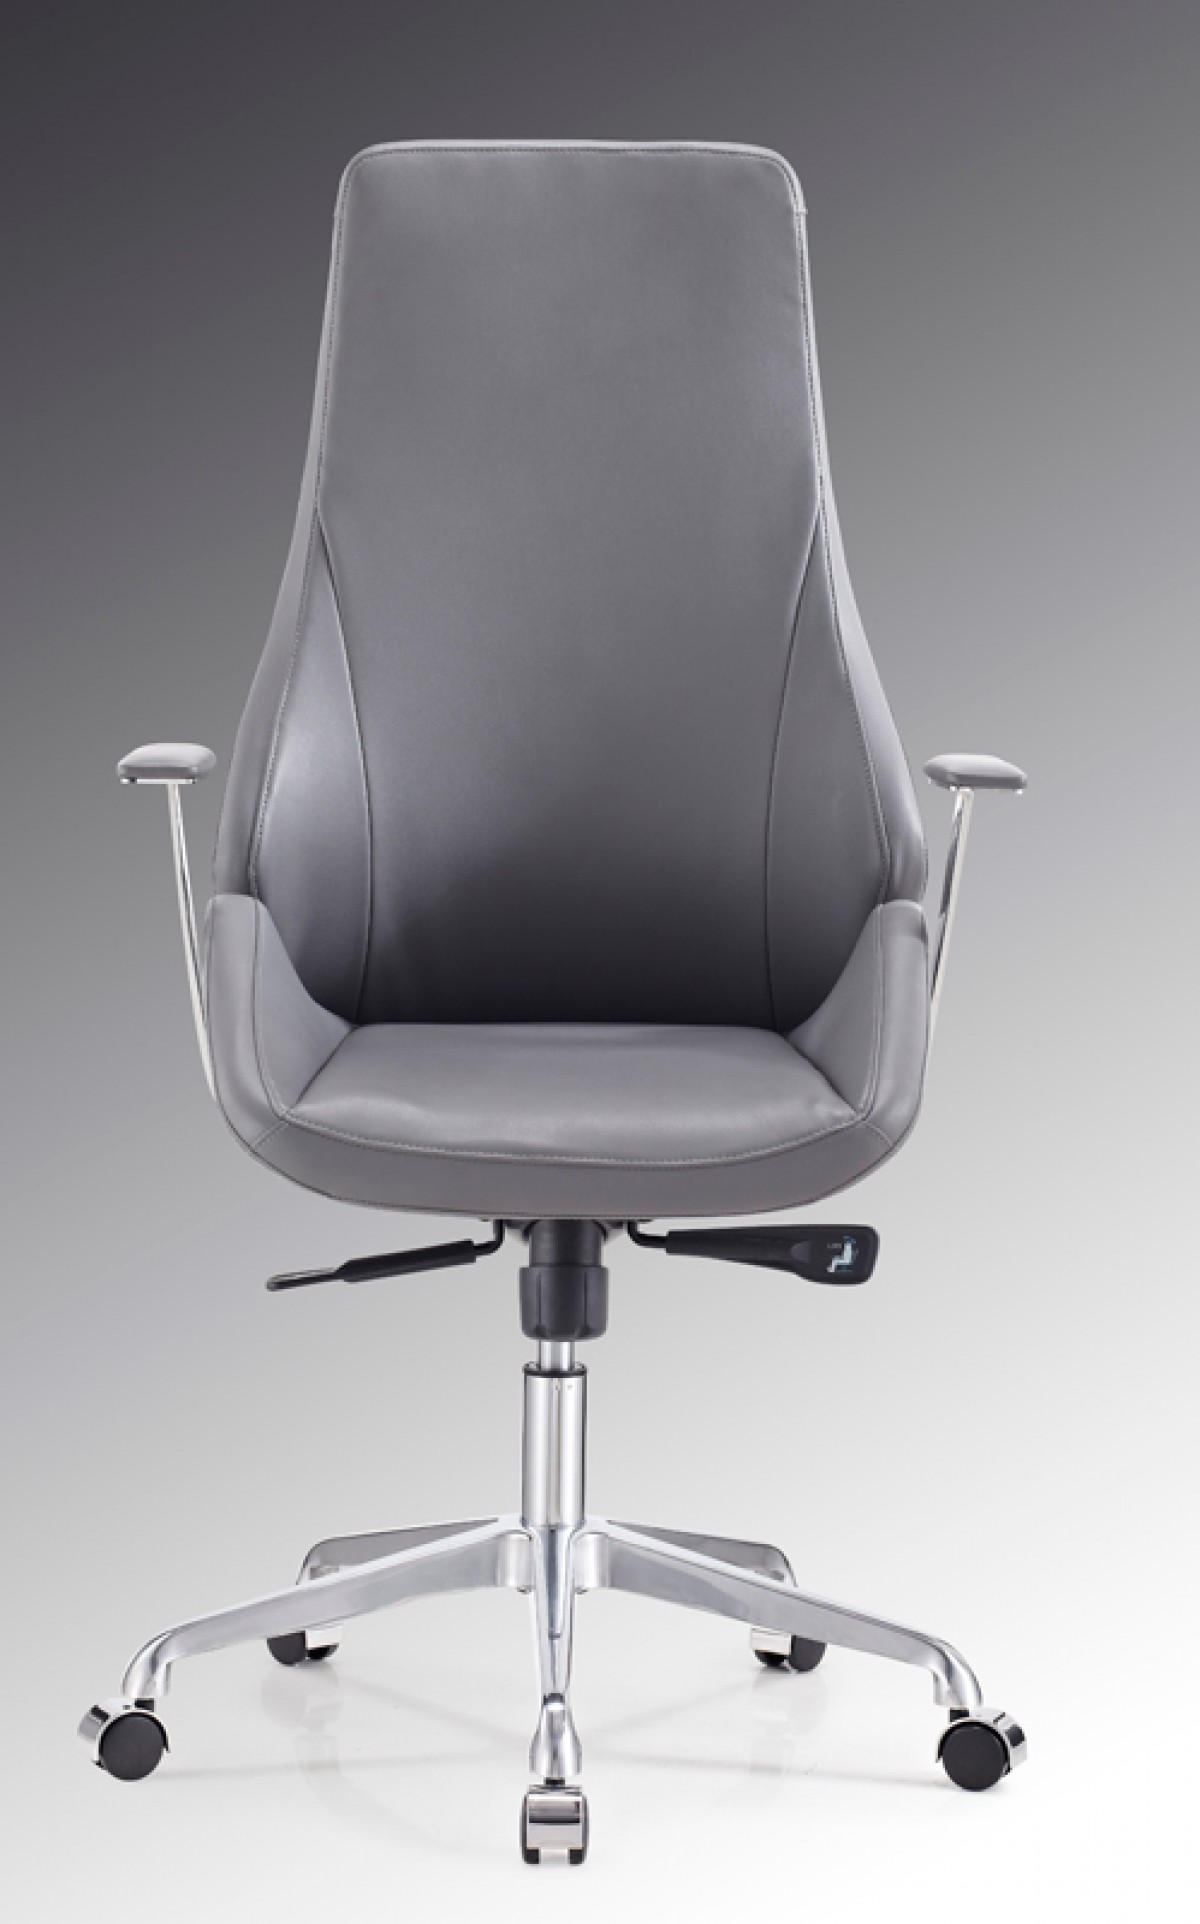 Modrest Chamber Modern Grey Office Chair Office Chairs Office